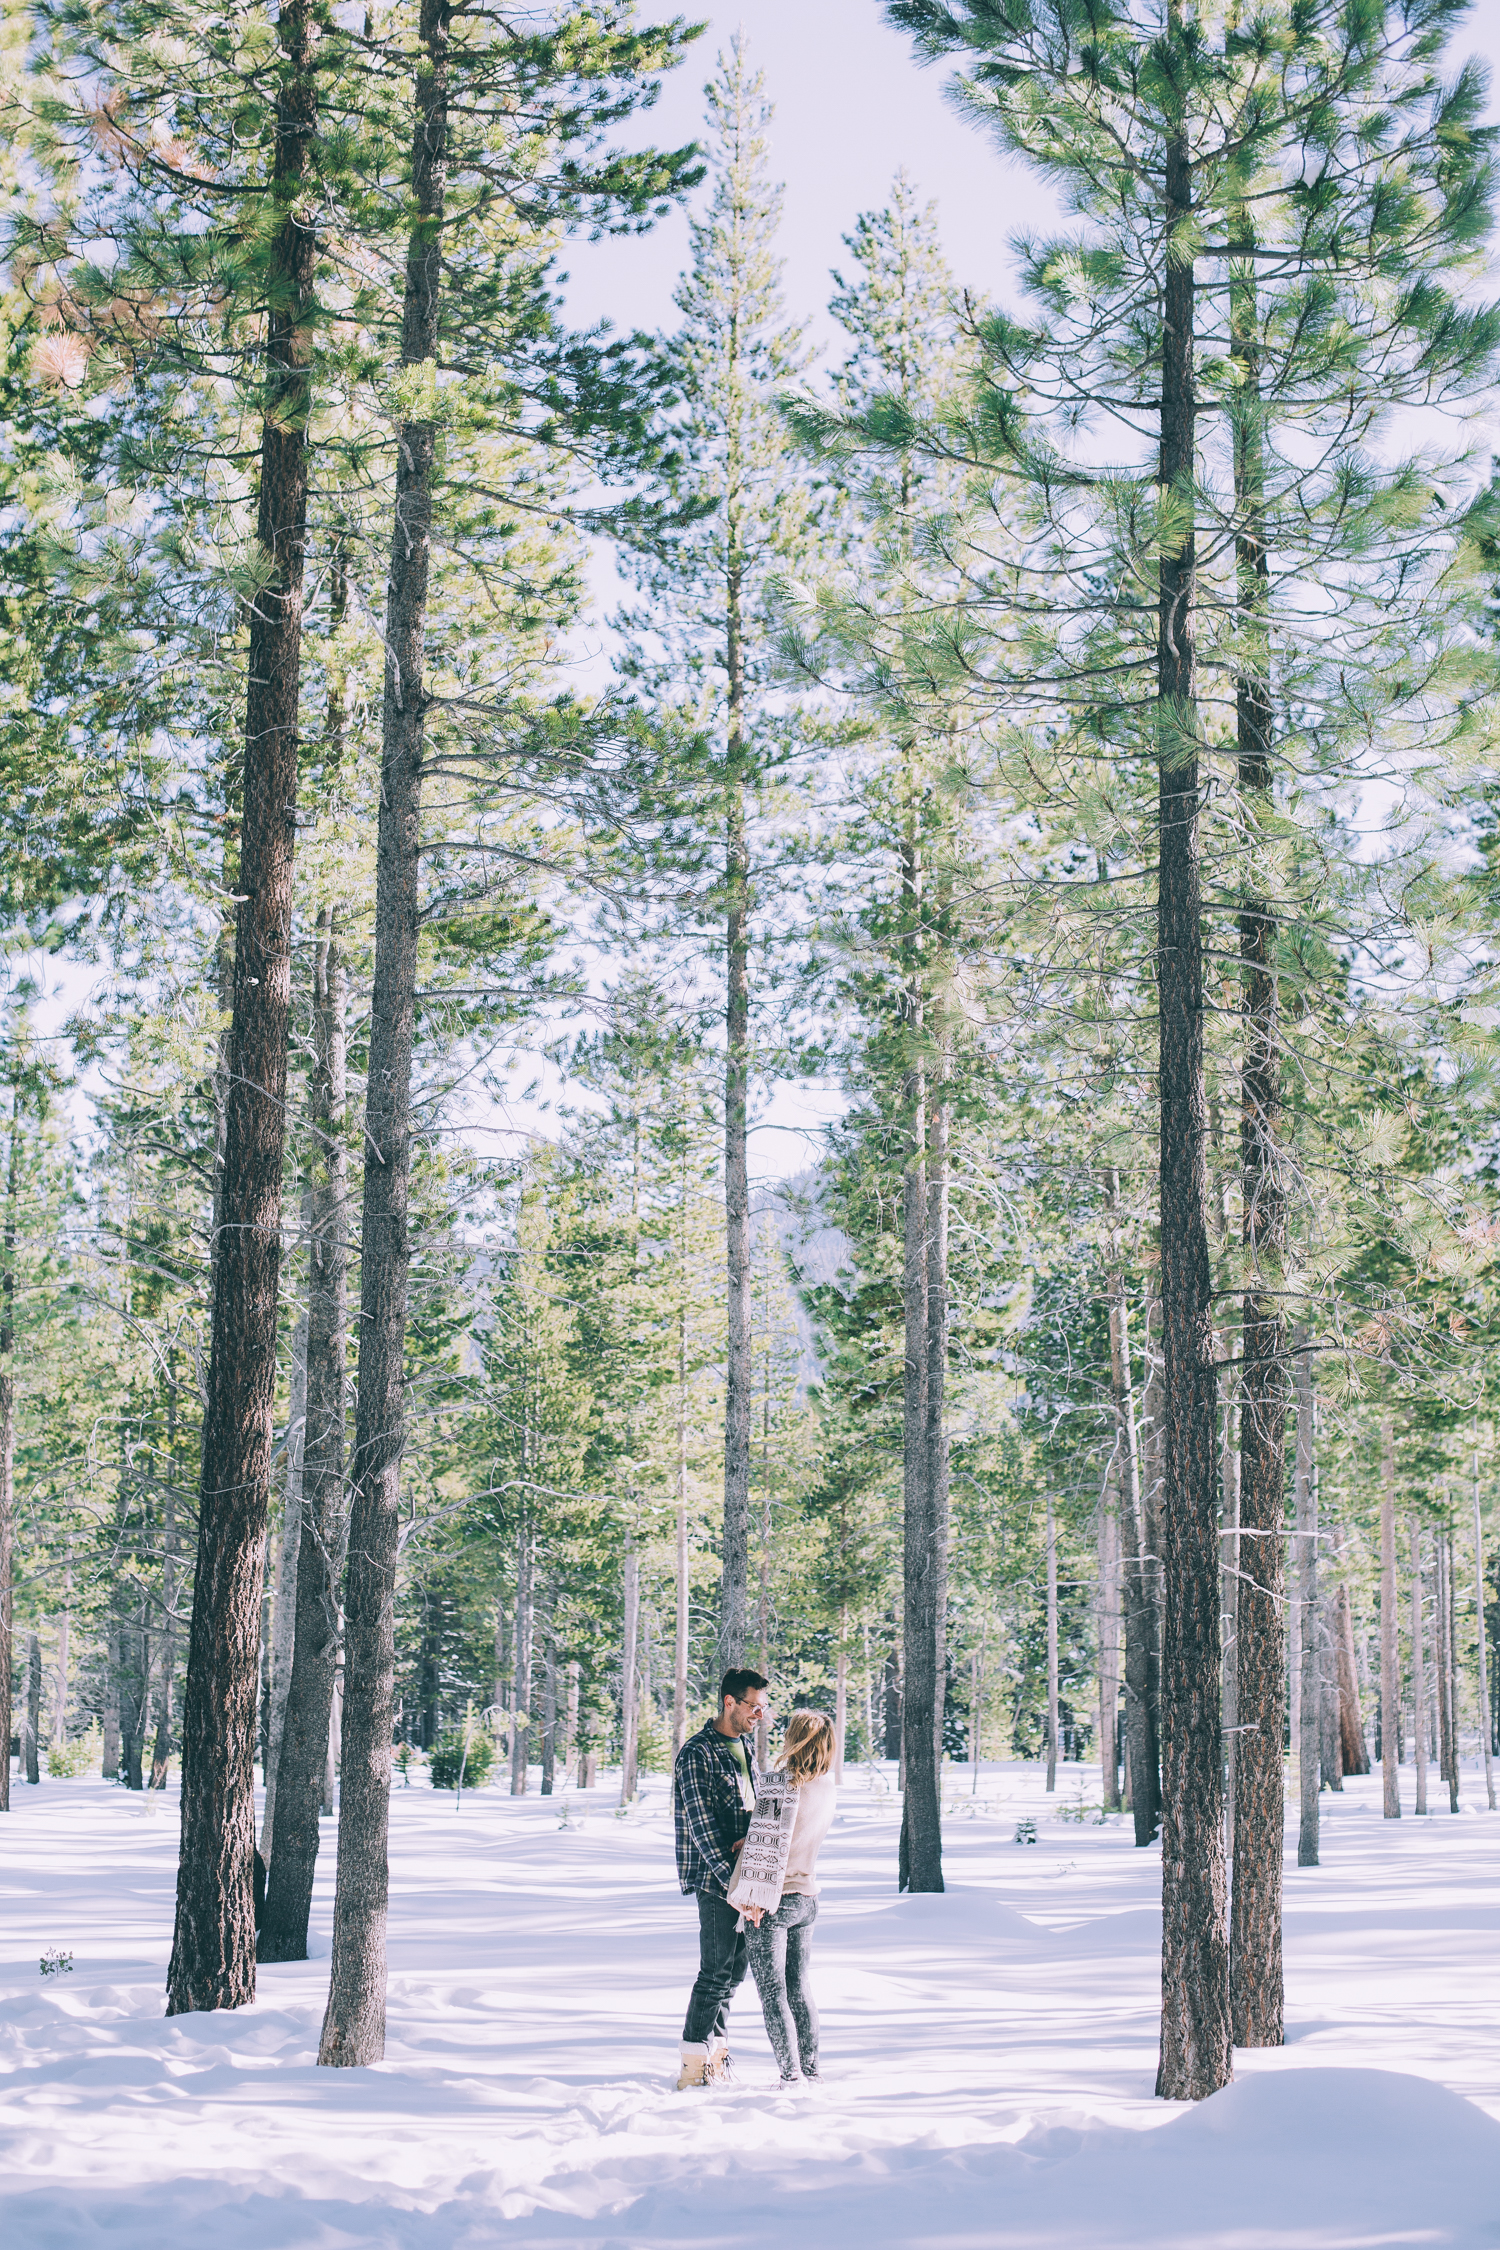 2015_12_31_GeoffandNelle_Engagement-10.jpg